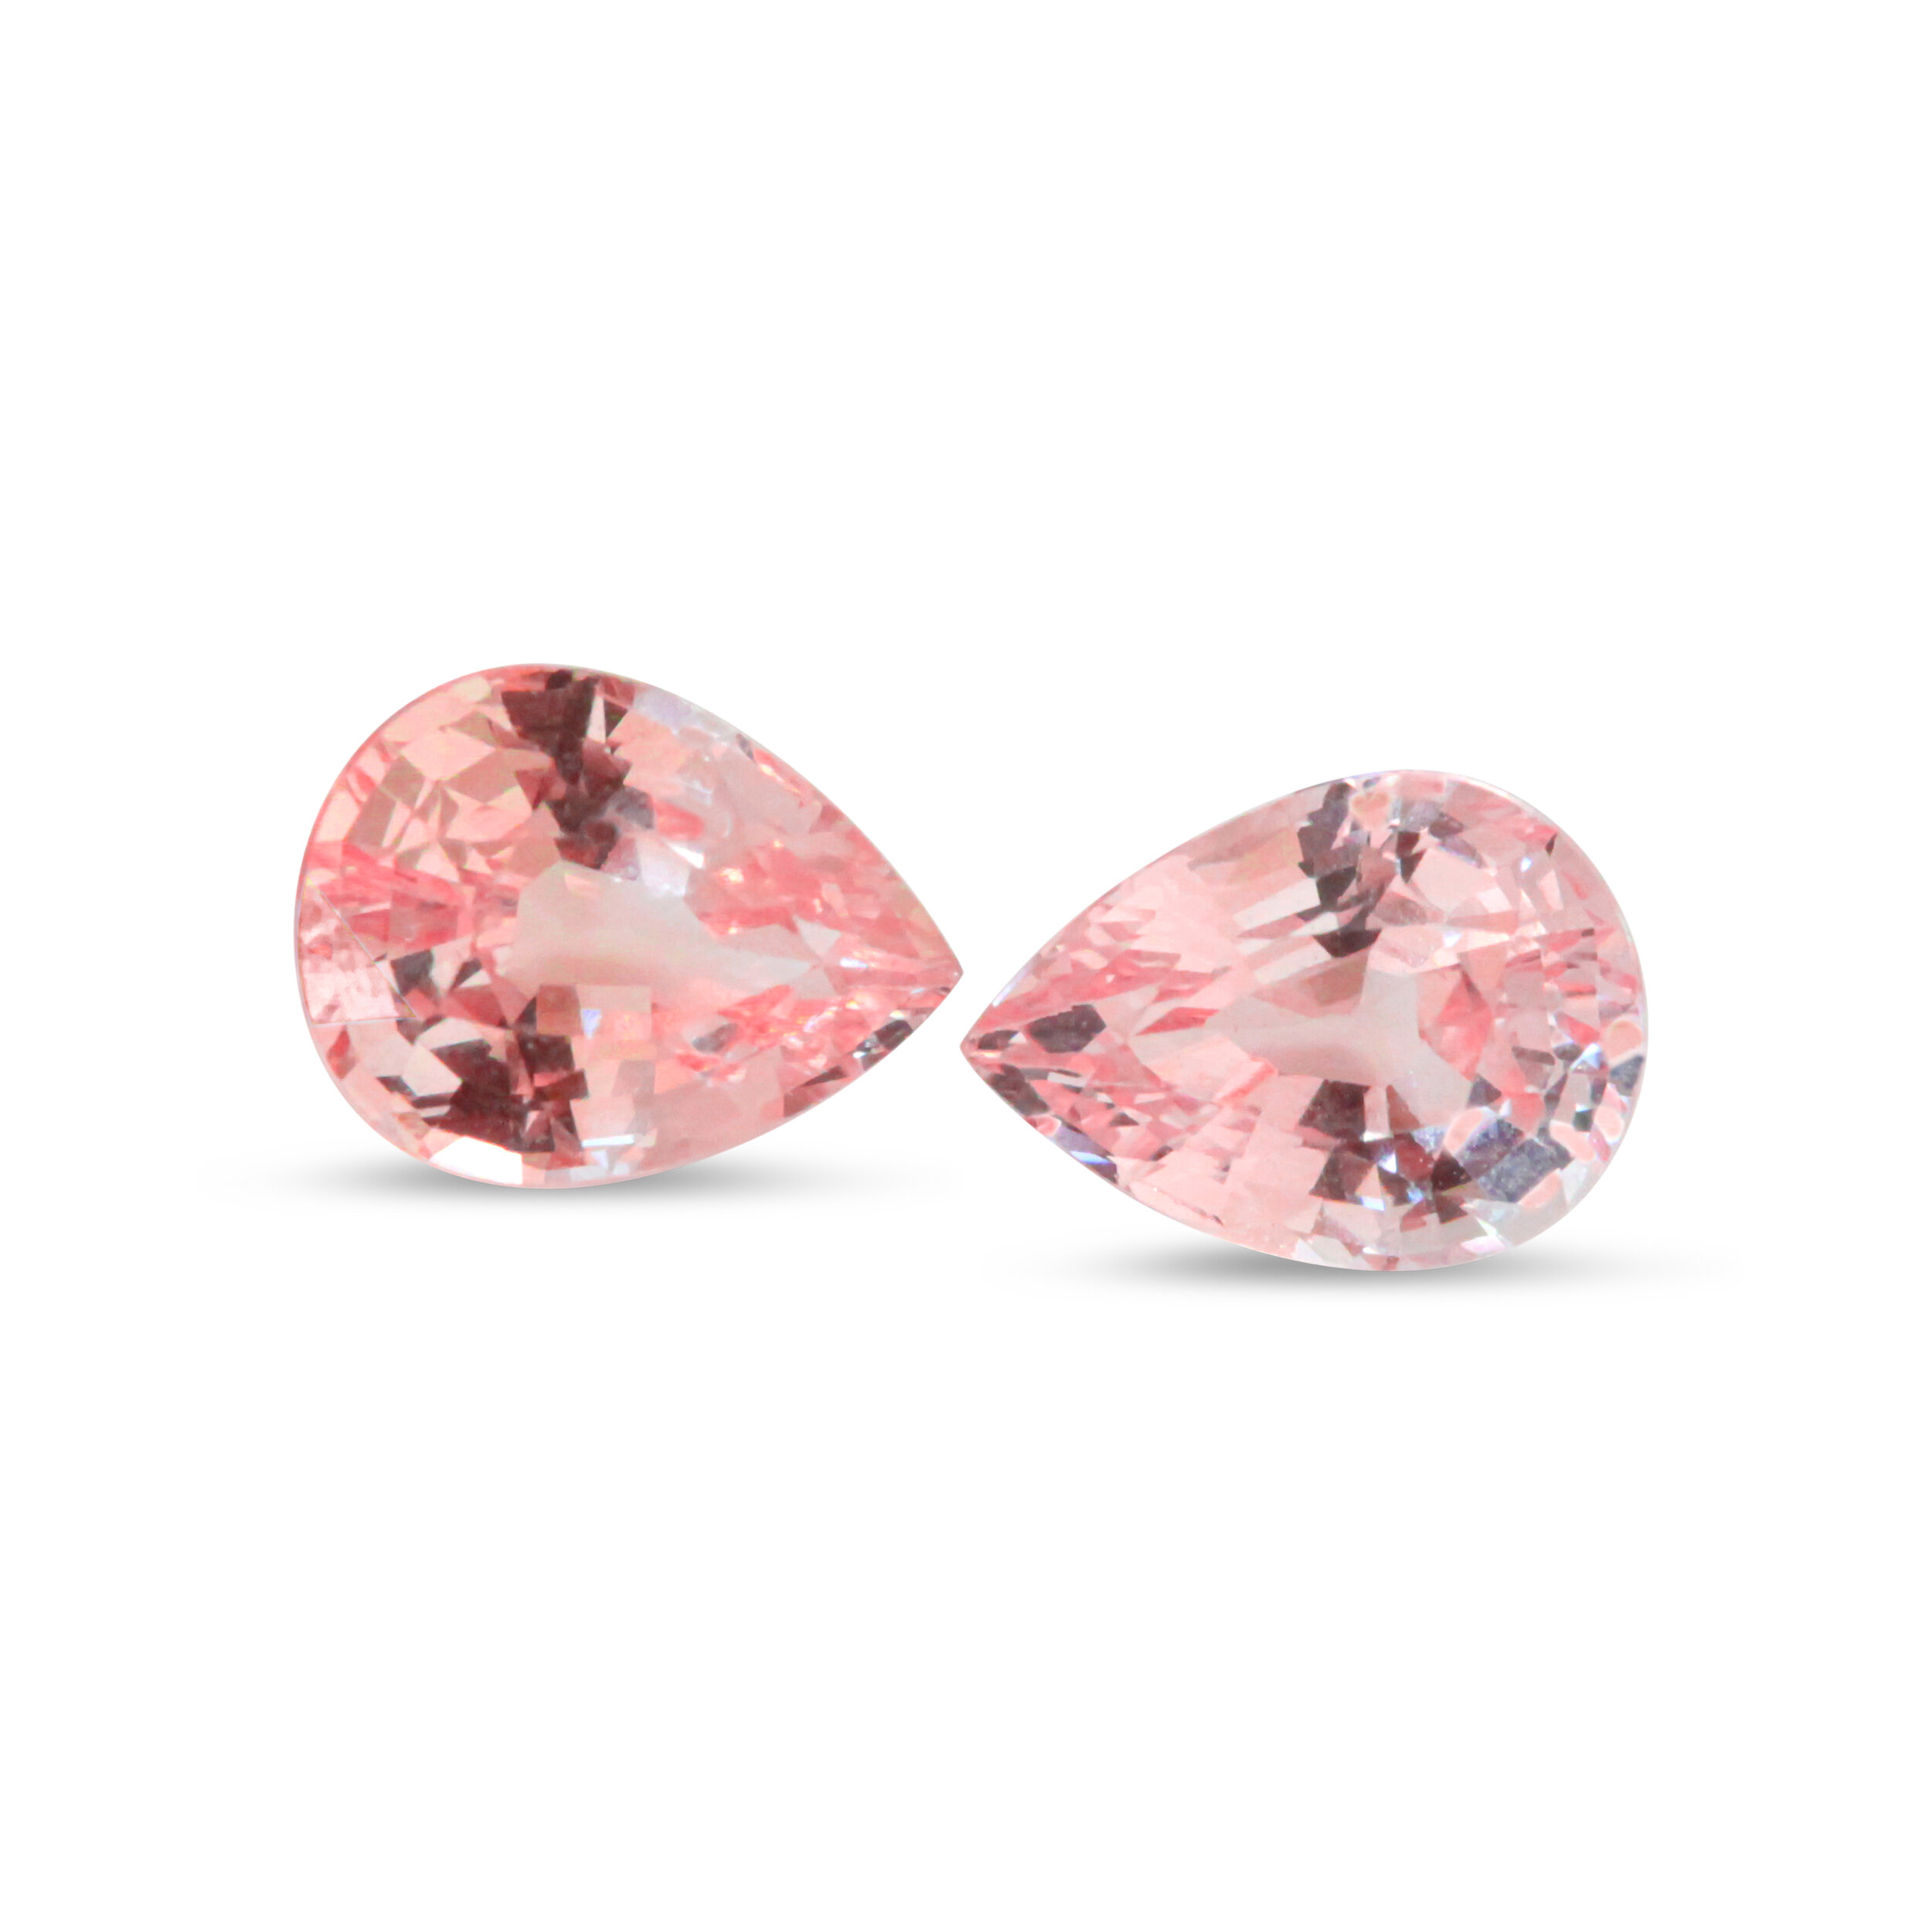 3 ctw Unheated Padparadscha Sapphire Pair, AGL